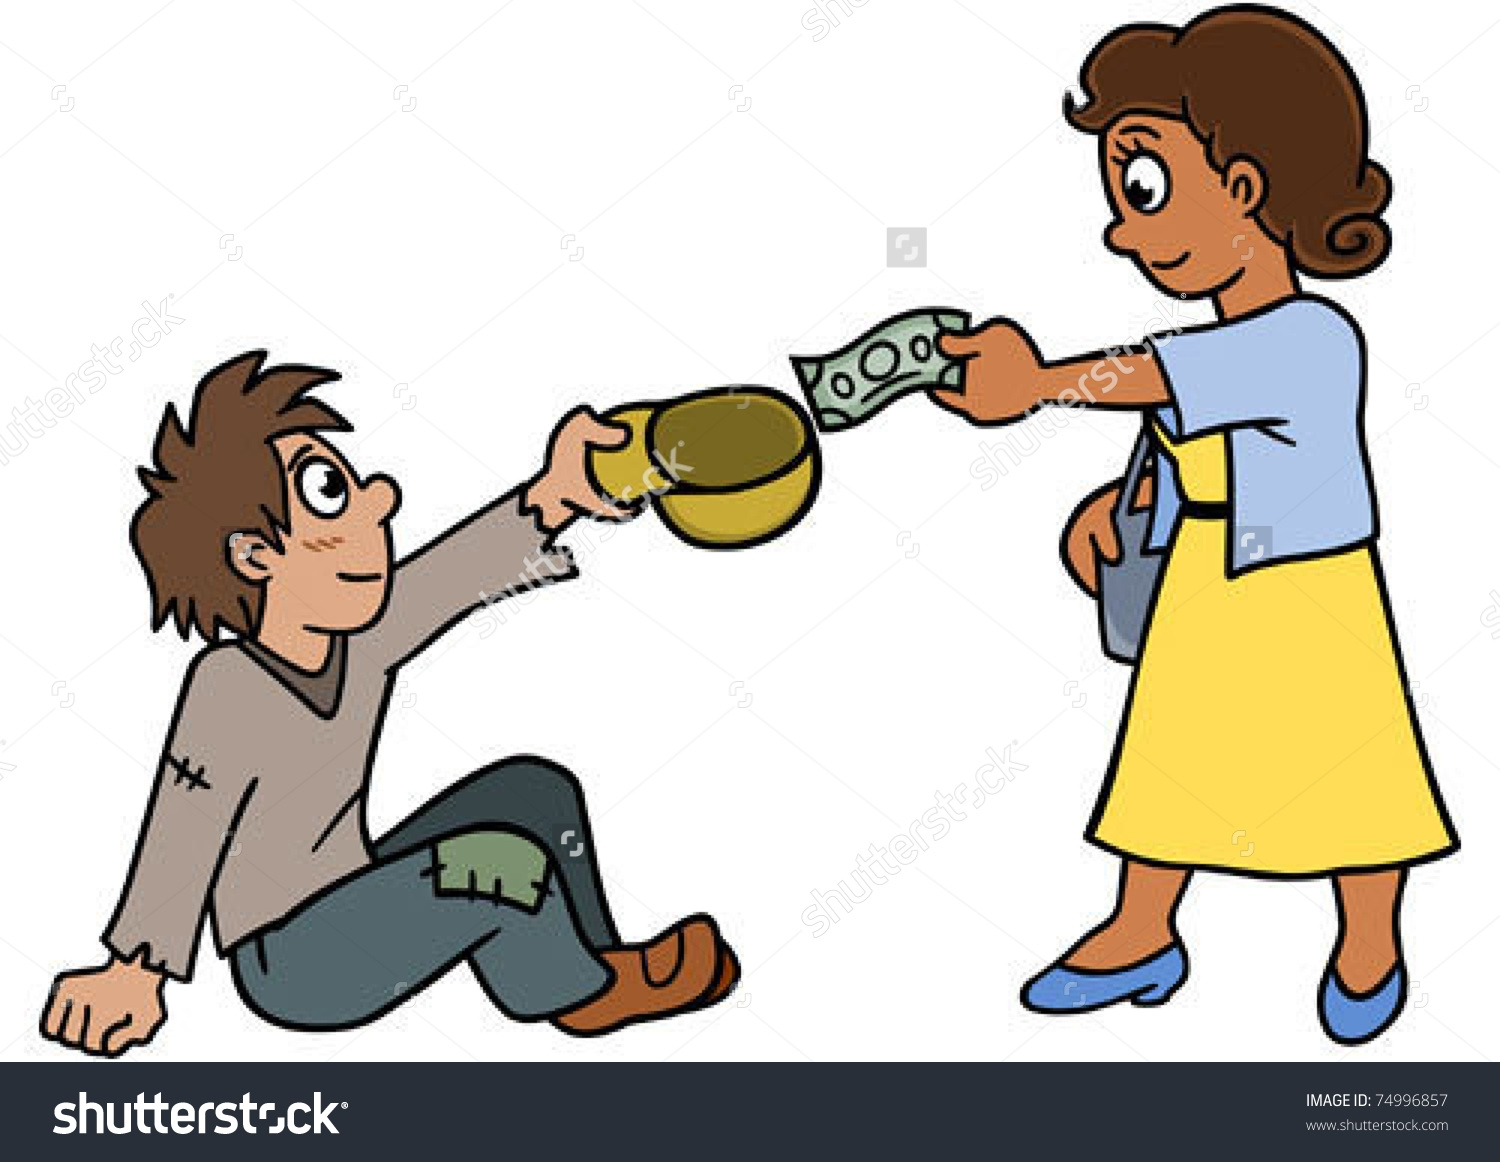 children helping others clipart 6 clipart station rh clipartstation com helping others in need clipart helping others clipart free